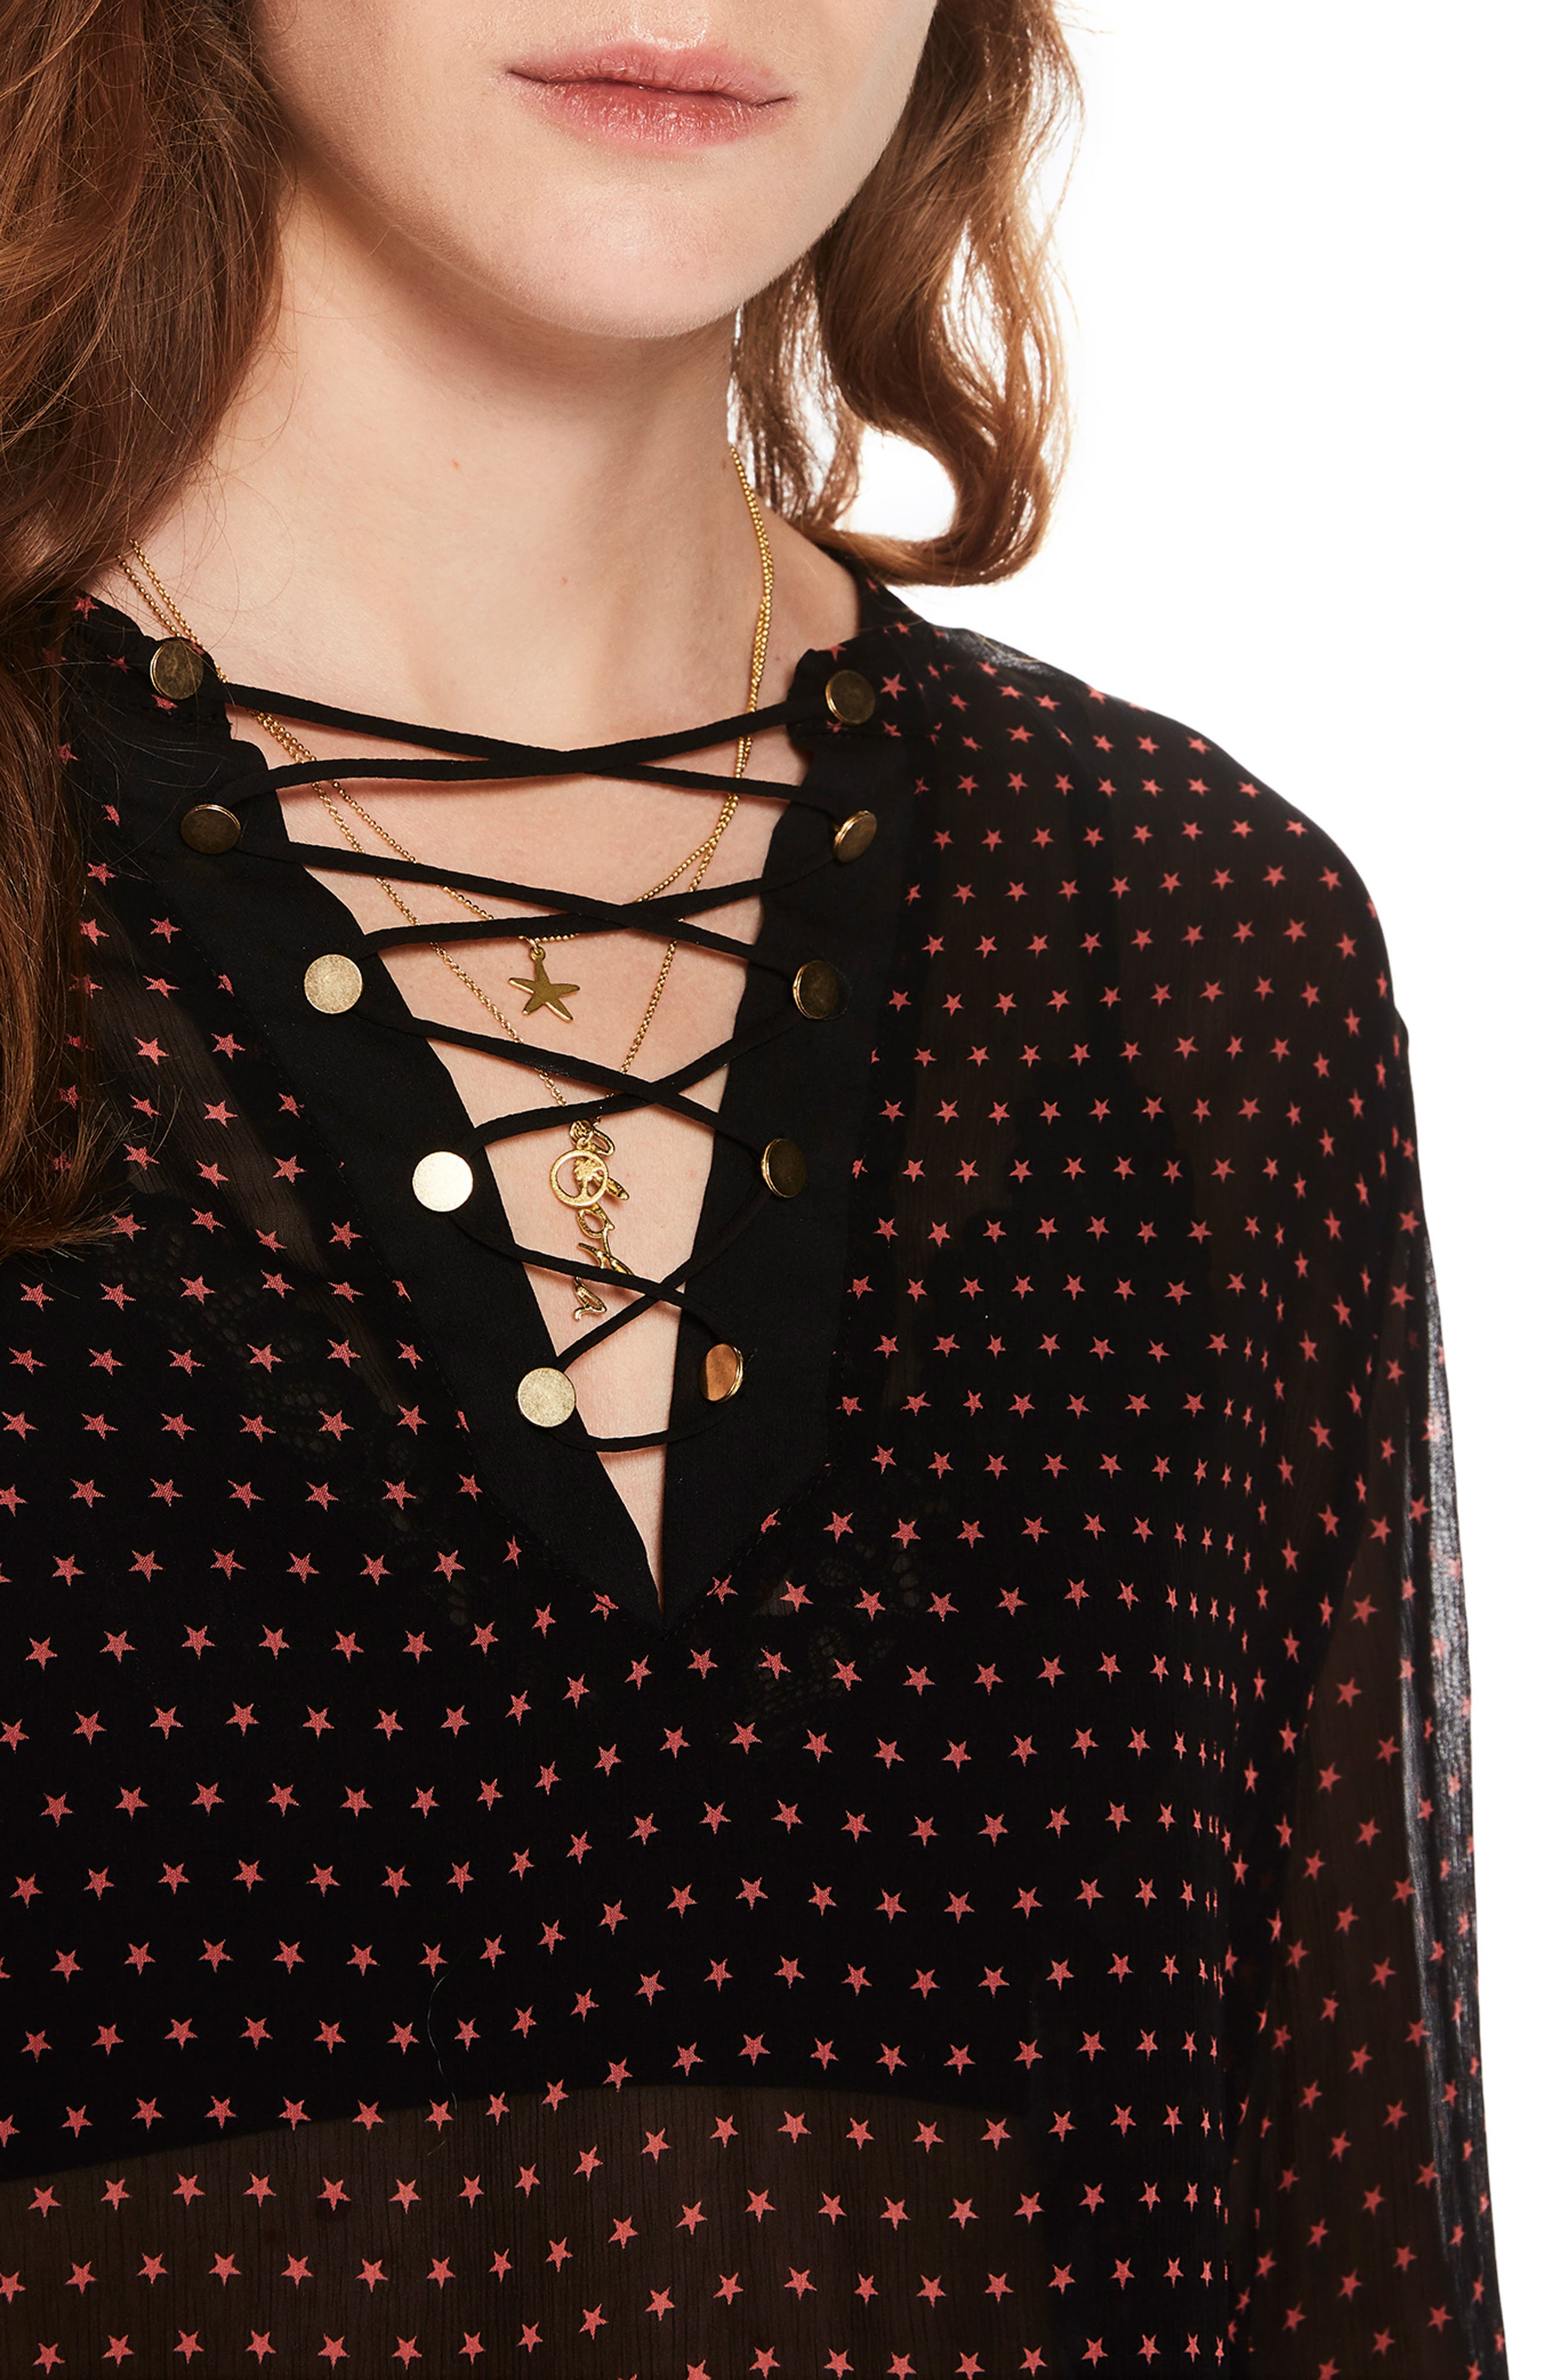 Lace-Up Star Print Blouse,                             Alternate thumbnail 3, color,                             BLACK W/ SMALL STAR